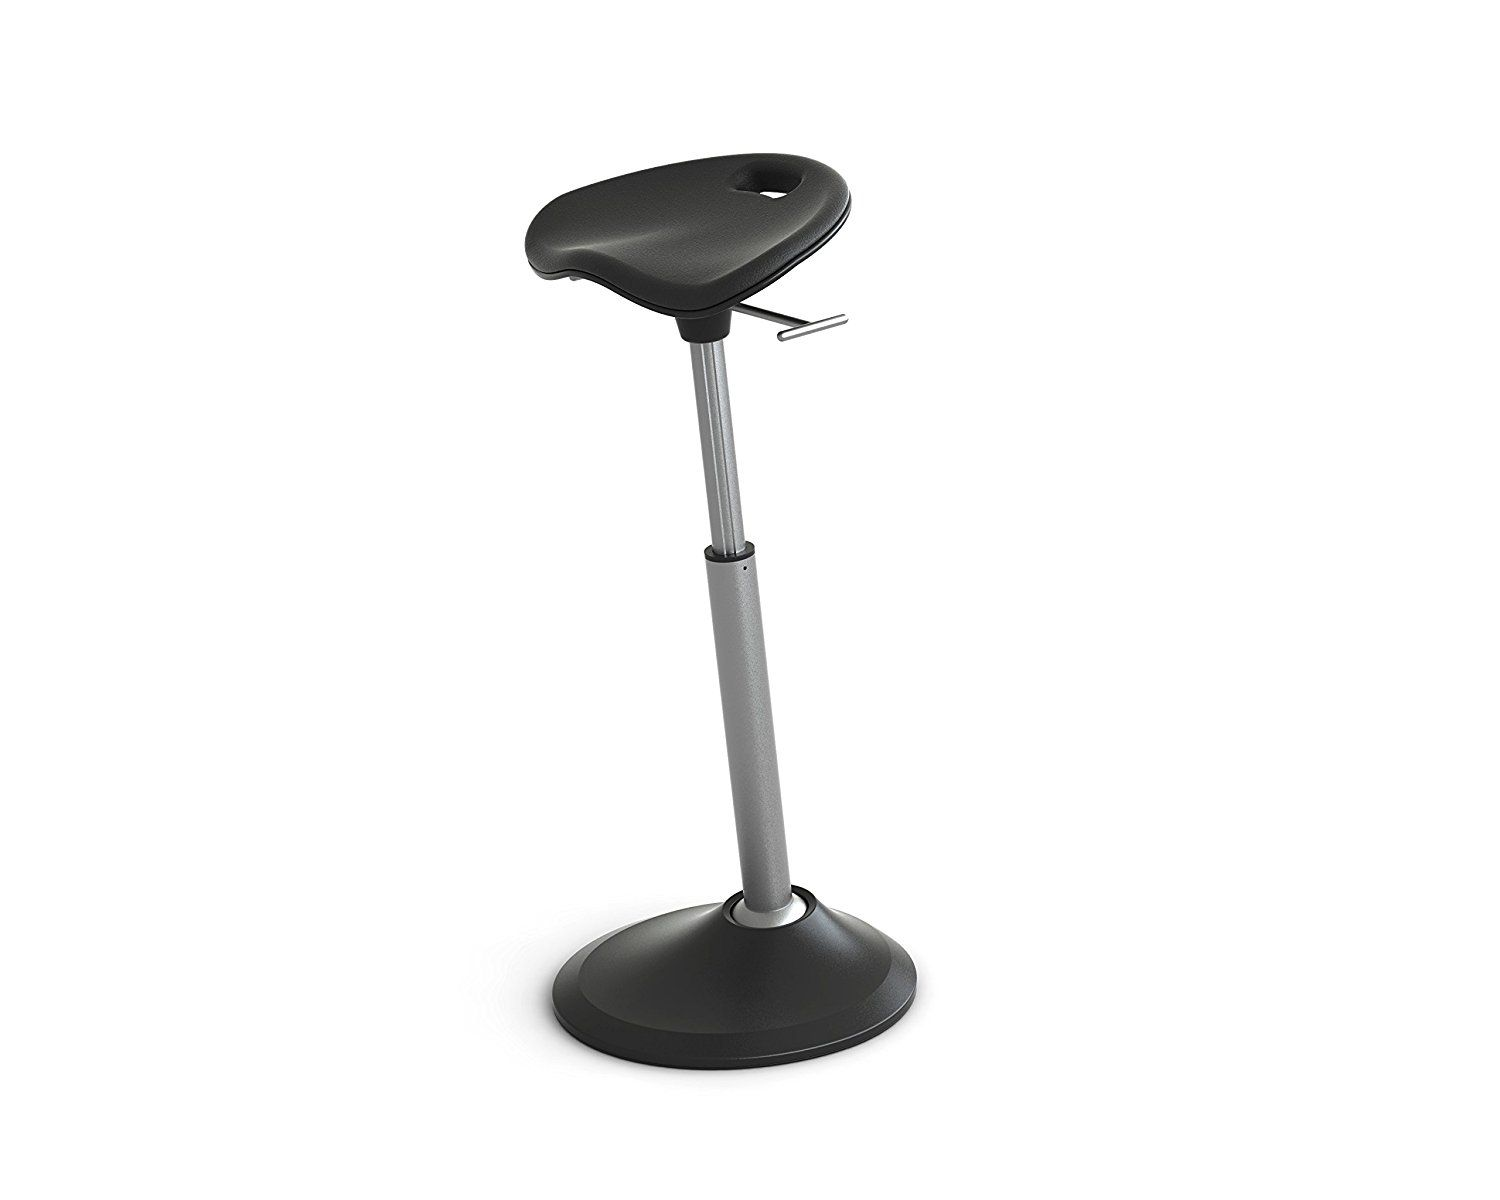 sit stand chair amazon yoga pose ergonomic and portable leaning stools guide review